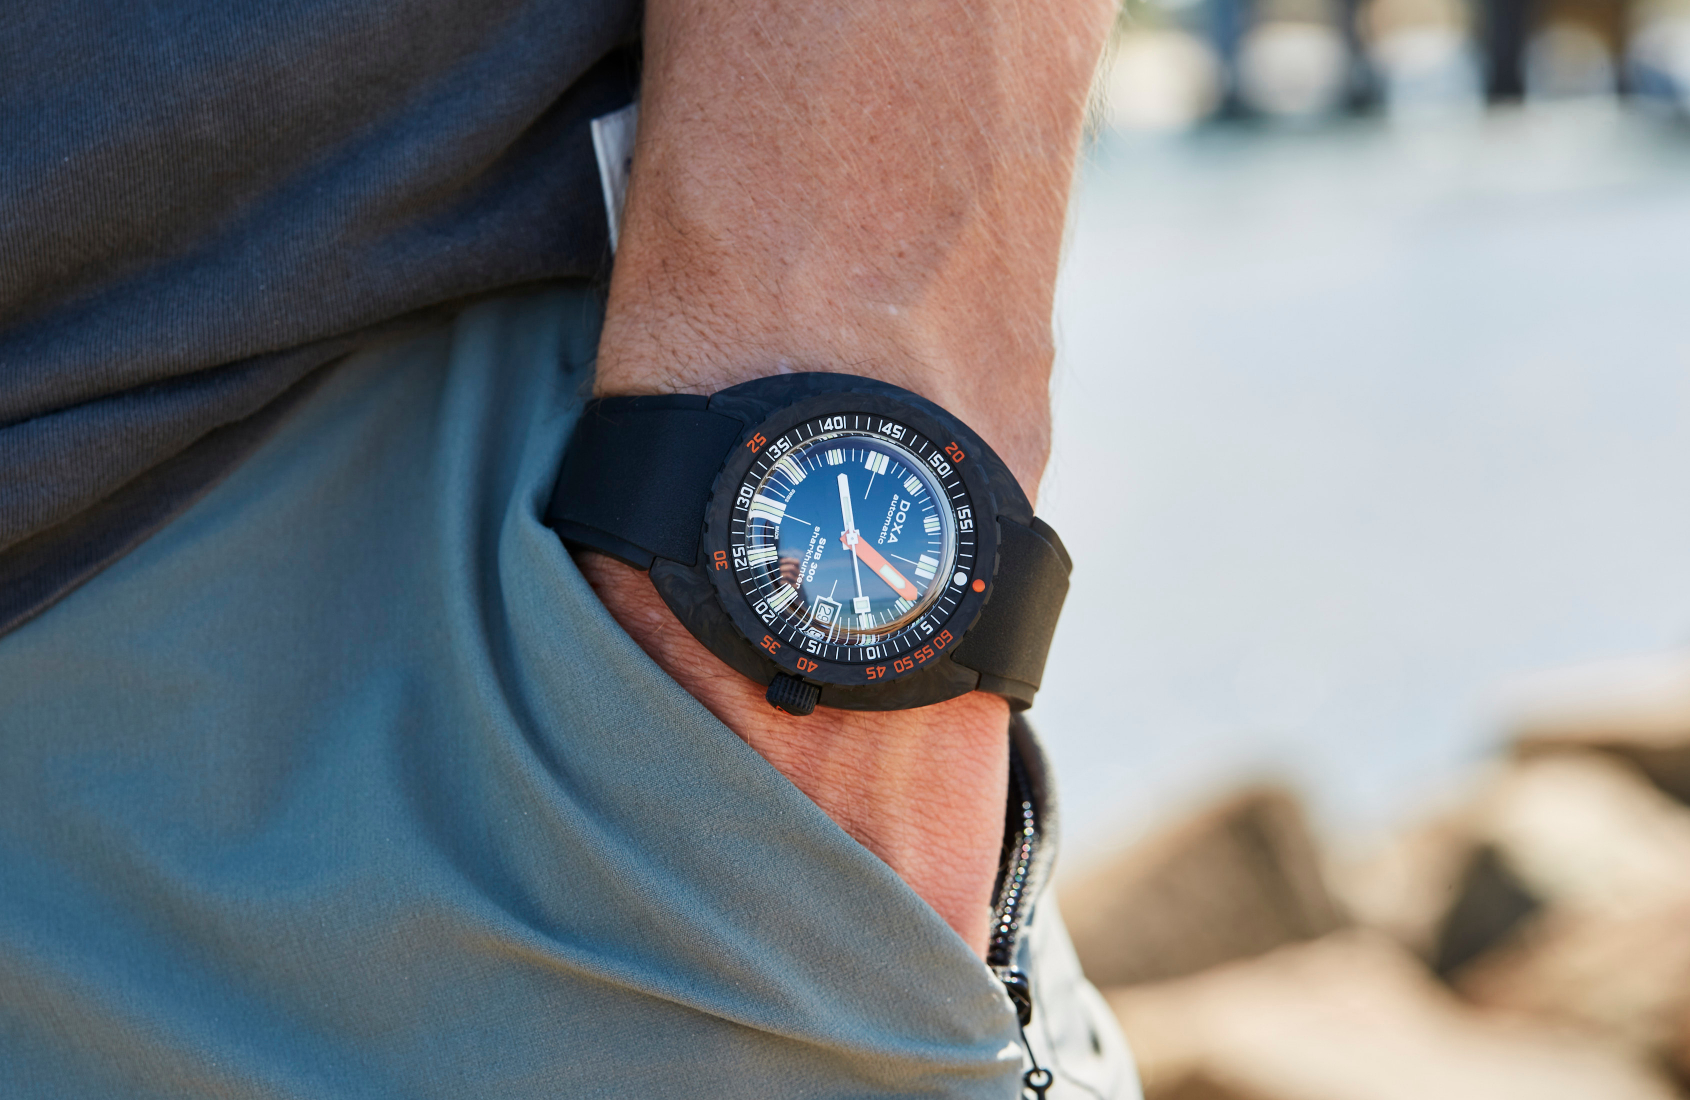 DOXA Sub 300 Carbon range delivers 6 eye-popping dials